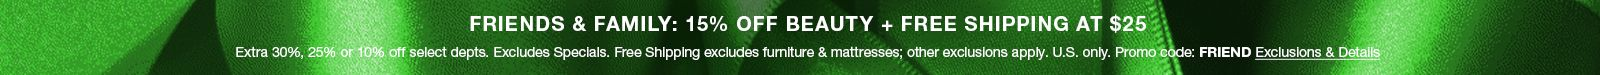 Friends and Family: 15 percent Off, Beauty, Plus Free Shipping at $25, Extra 30 percent, 25 percent or 10 percent off select department, Excludes Specials, Free Shipping excludes furniture and mattresses, Promo code: Friend Exclusions and Details